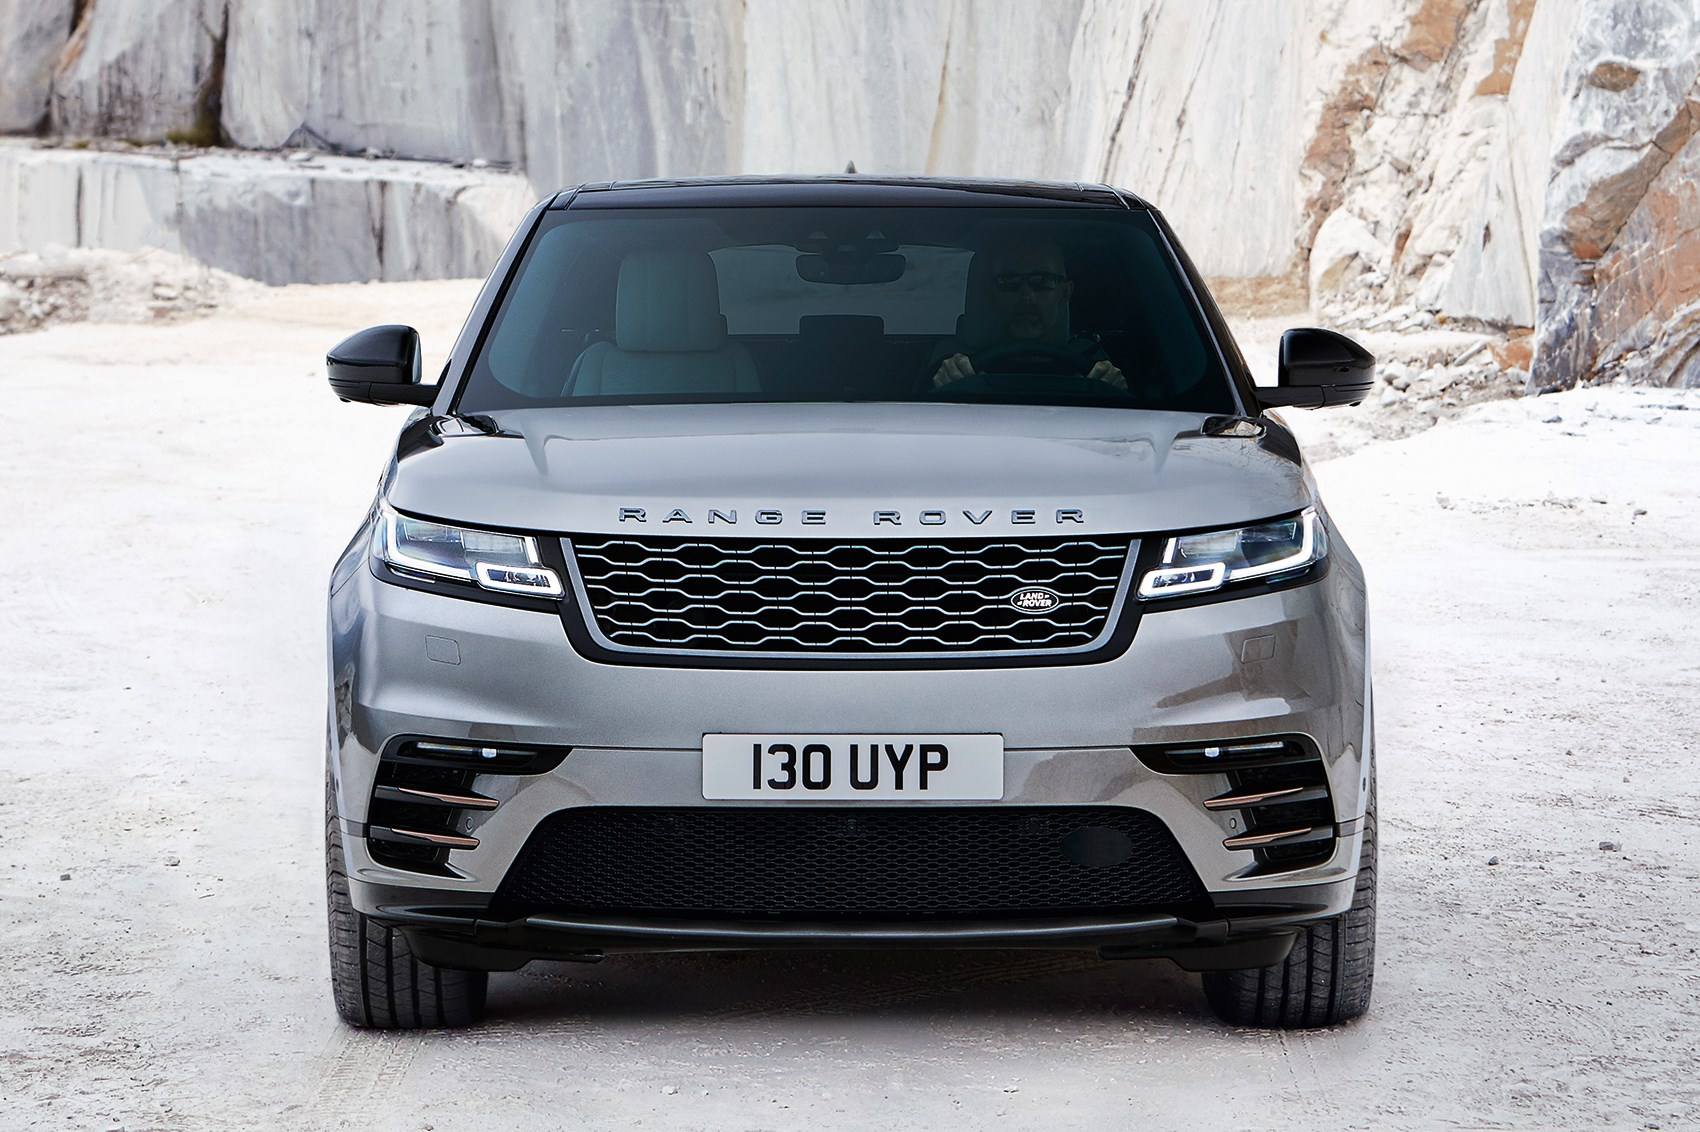 new range rover velar revealed in pictures by car magazine. Black Bedroom Furniture Sets. Home Design Ideas